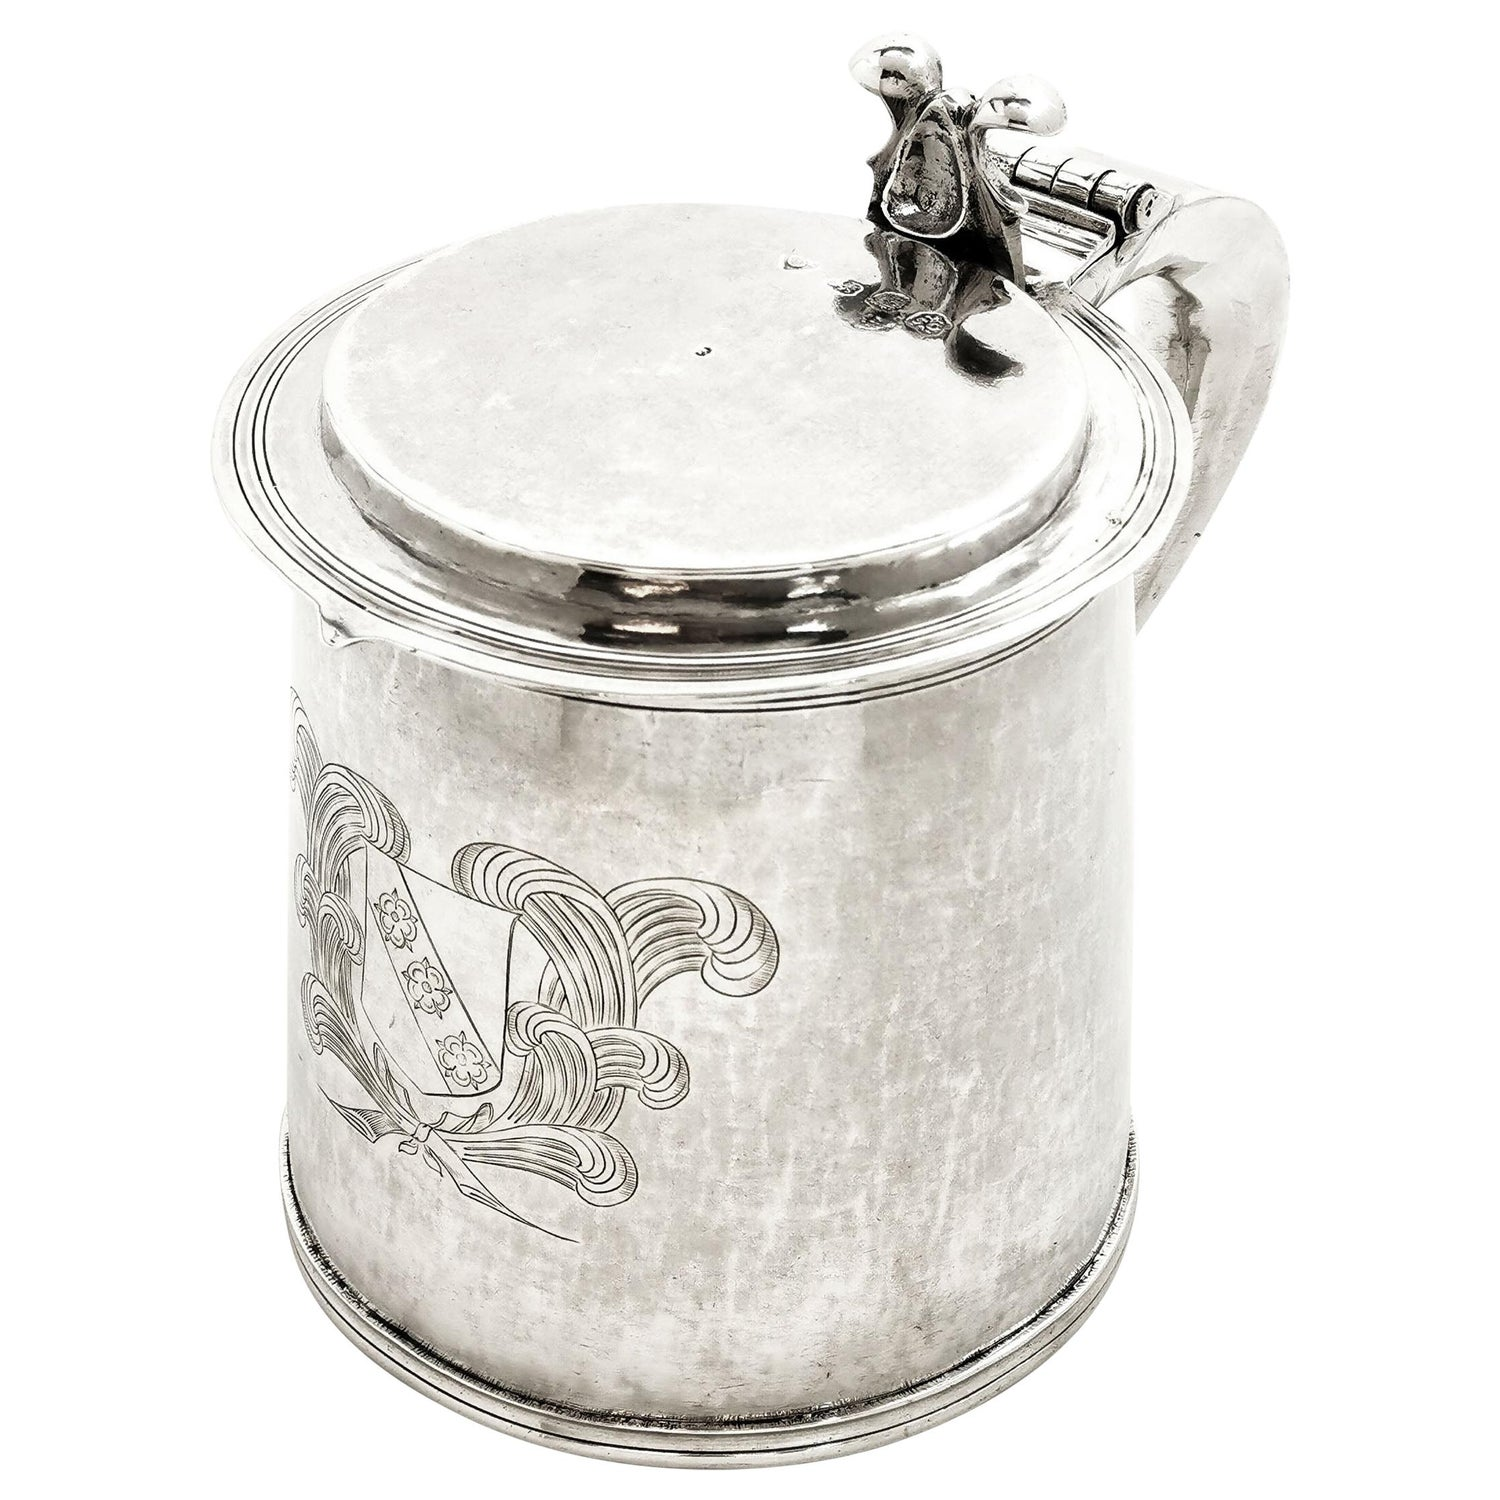 Antique Silver Charles II Lidded Tankard Mug 1673 17th Century Beer Ale Tankard